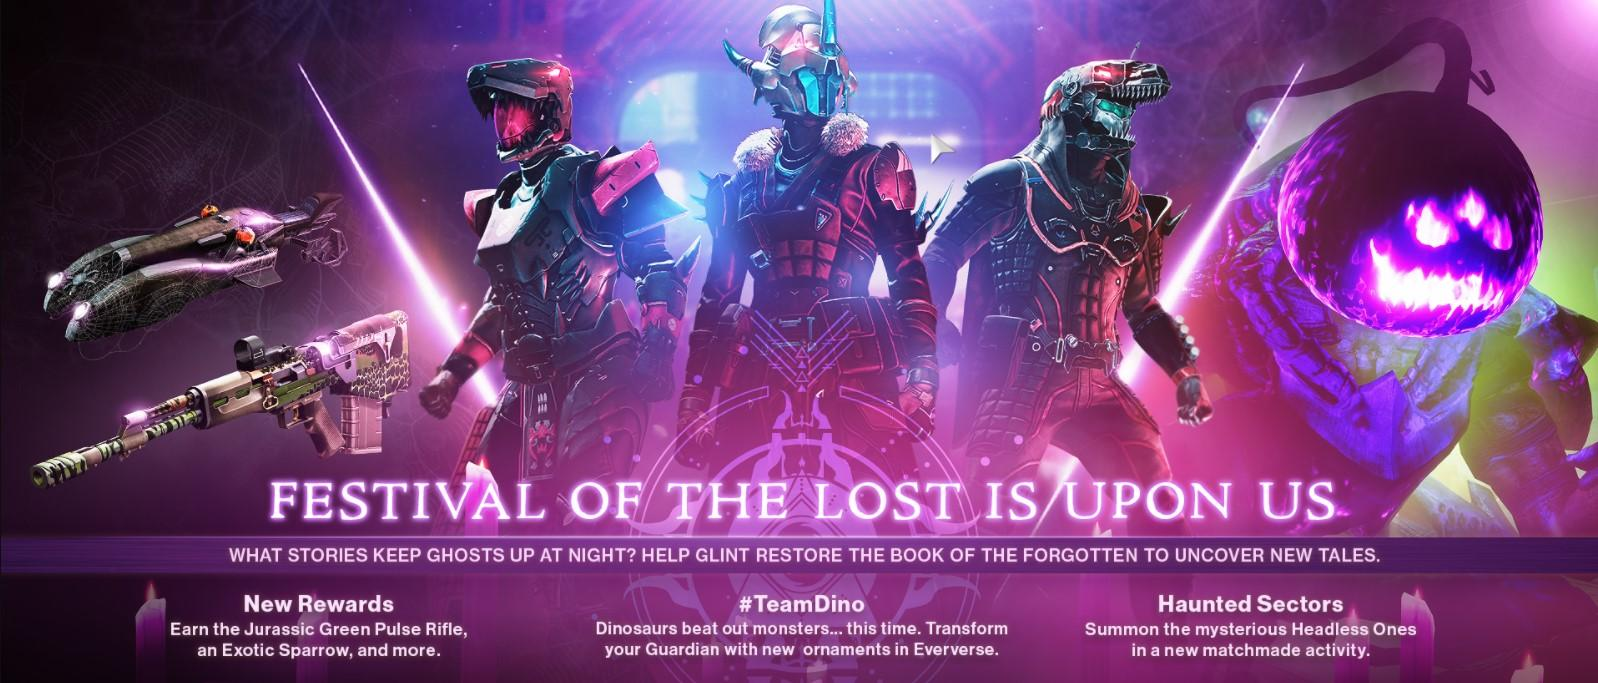 The latest Festival of the Lost features dino armor, haunted sectors, pumpkin head monsters and more